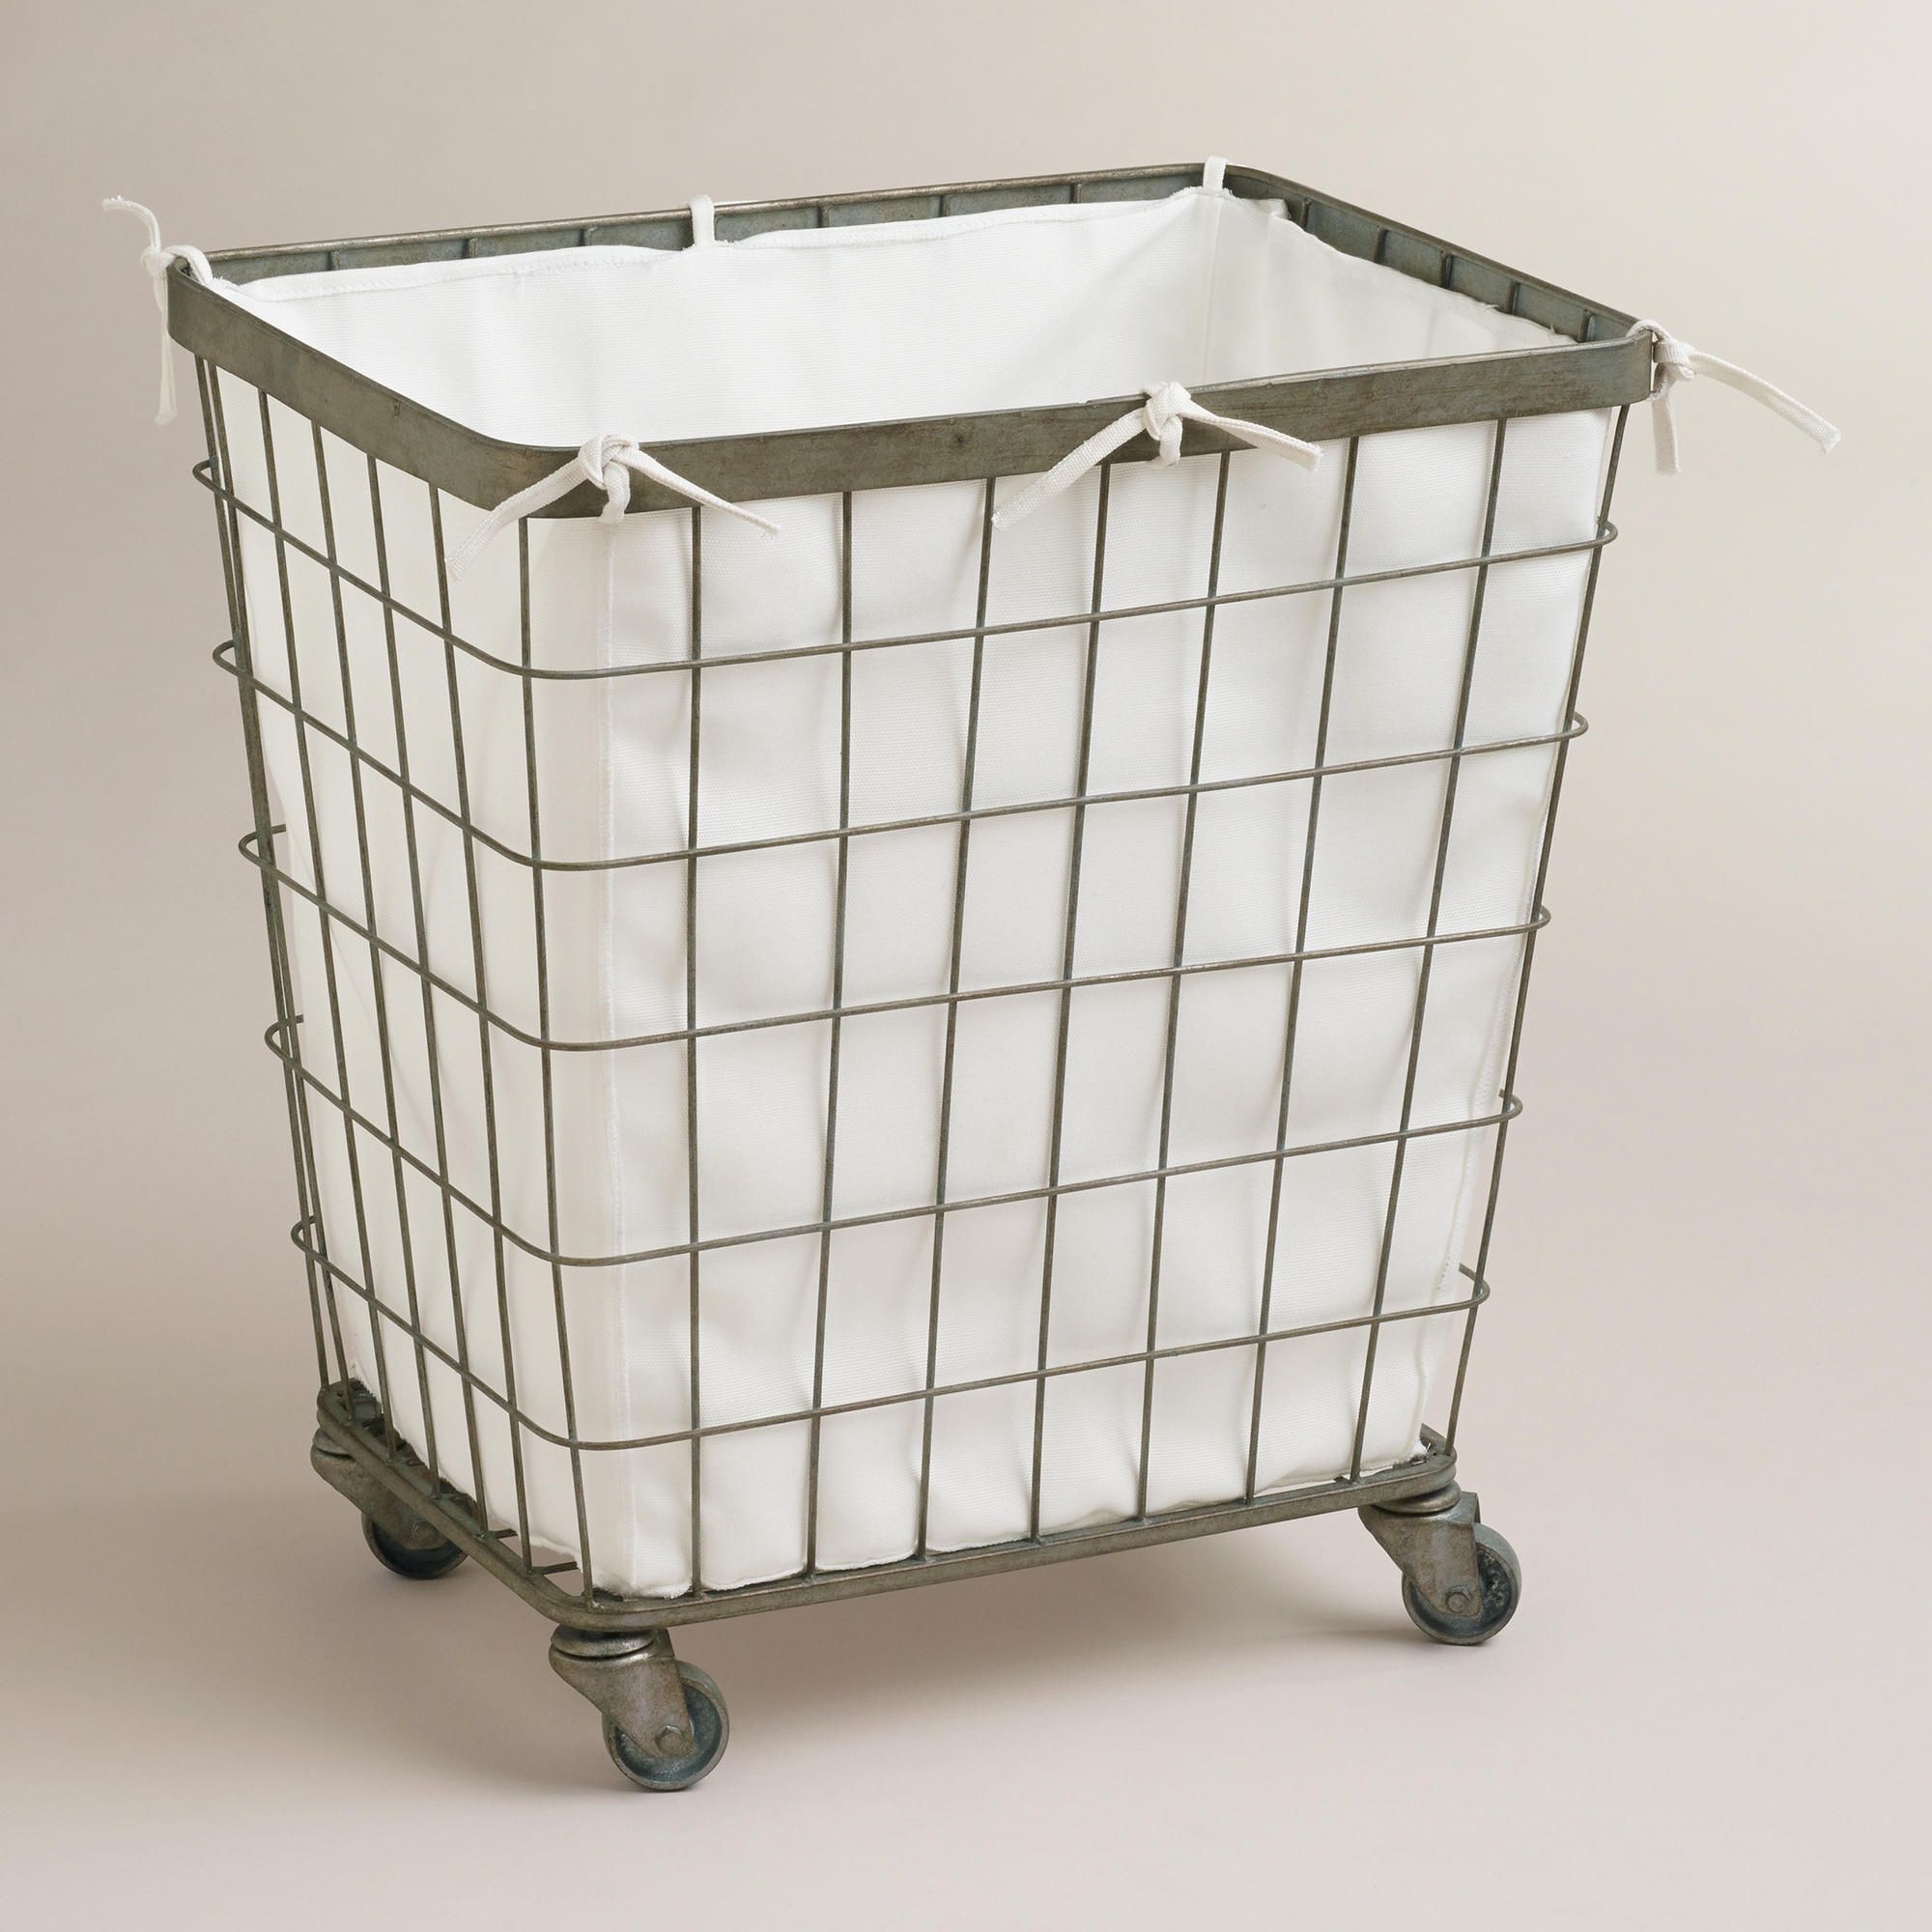 Iipsrv Fcgi 2000 2000 Laundry Basket On Wheels Laundry Hamper